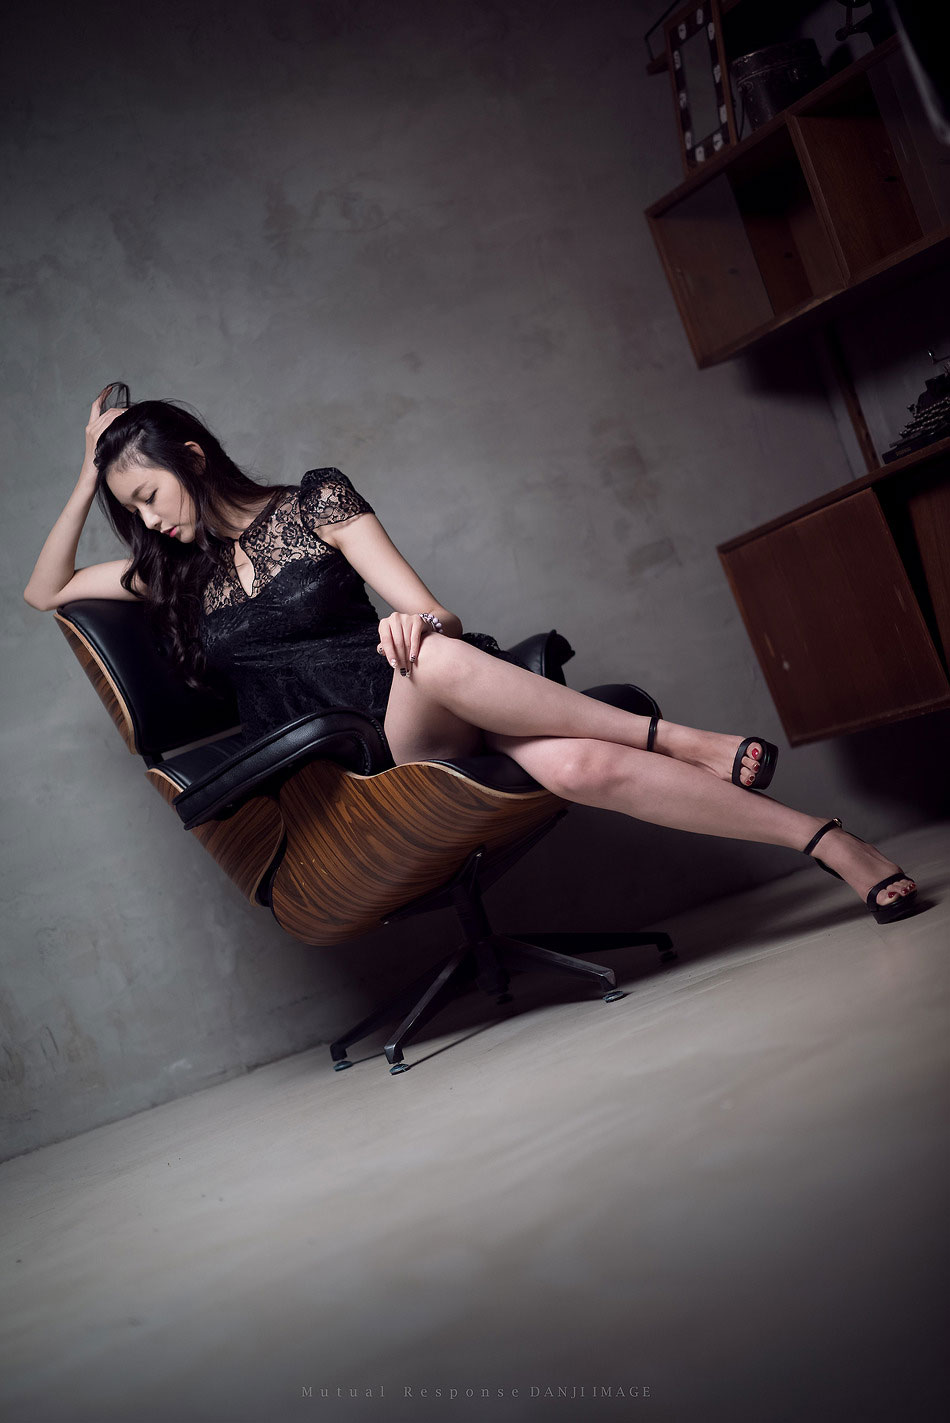 Moon Ga Kyeong studio photoshoot